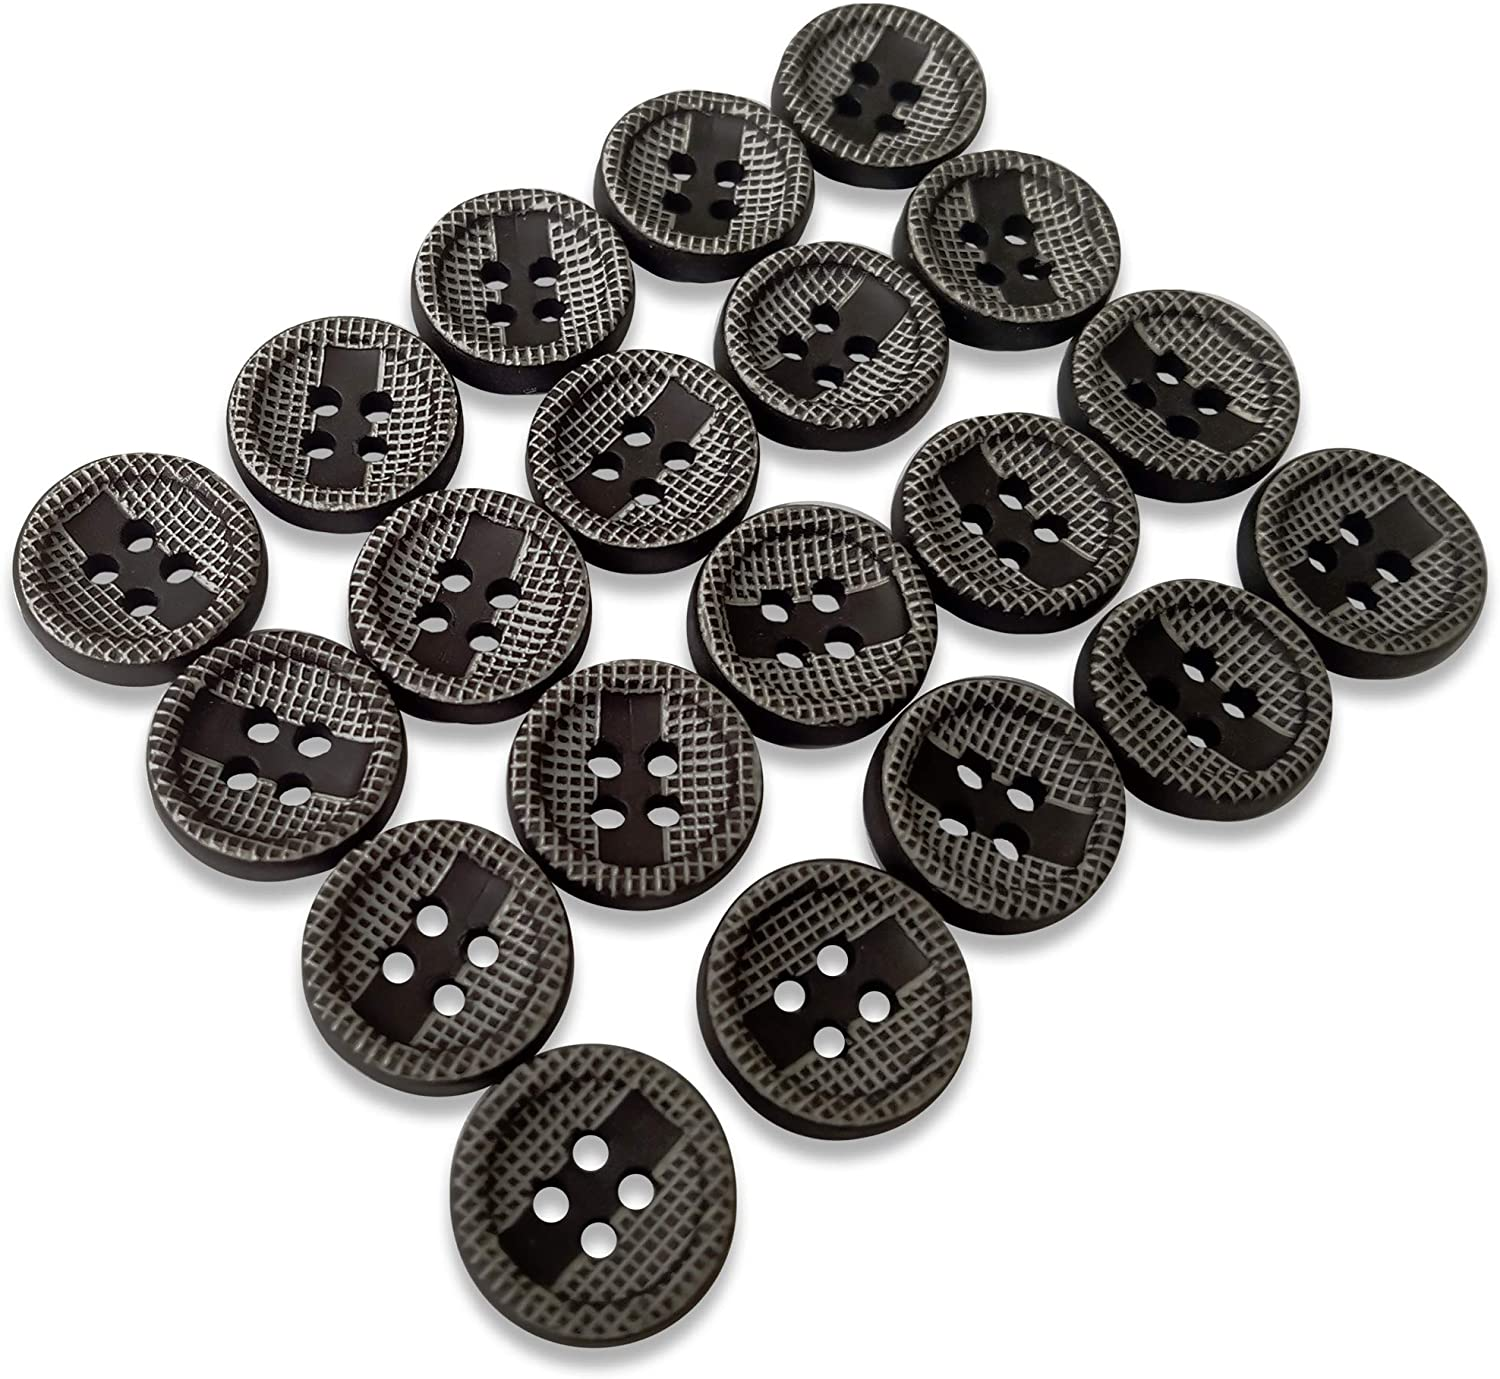 Grey Black Round Blouse Button 4-Hole 0.45 in Sewing Plastic Buttons 18L Pack of 20